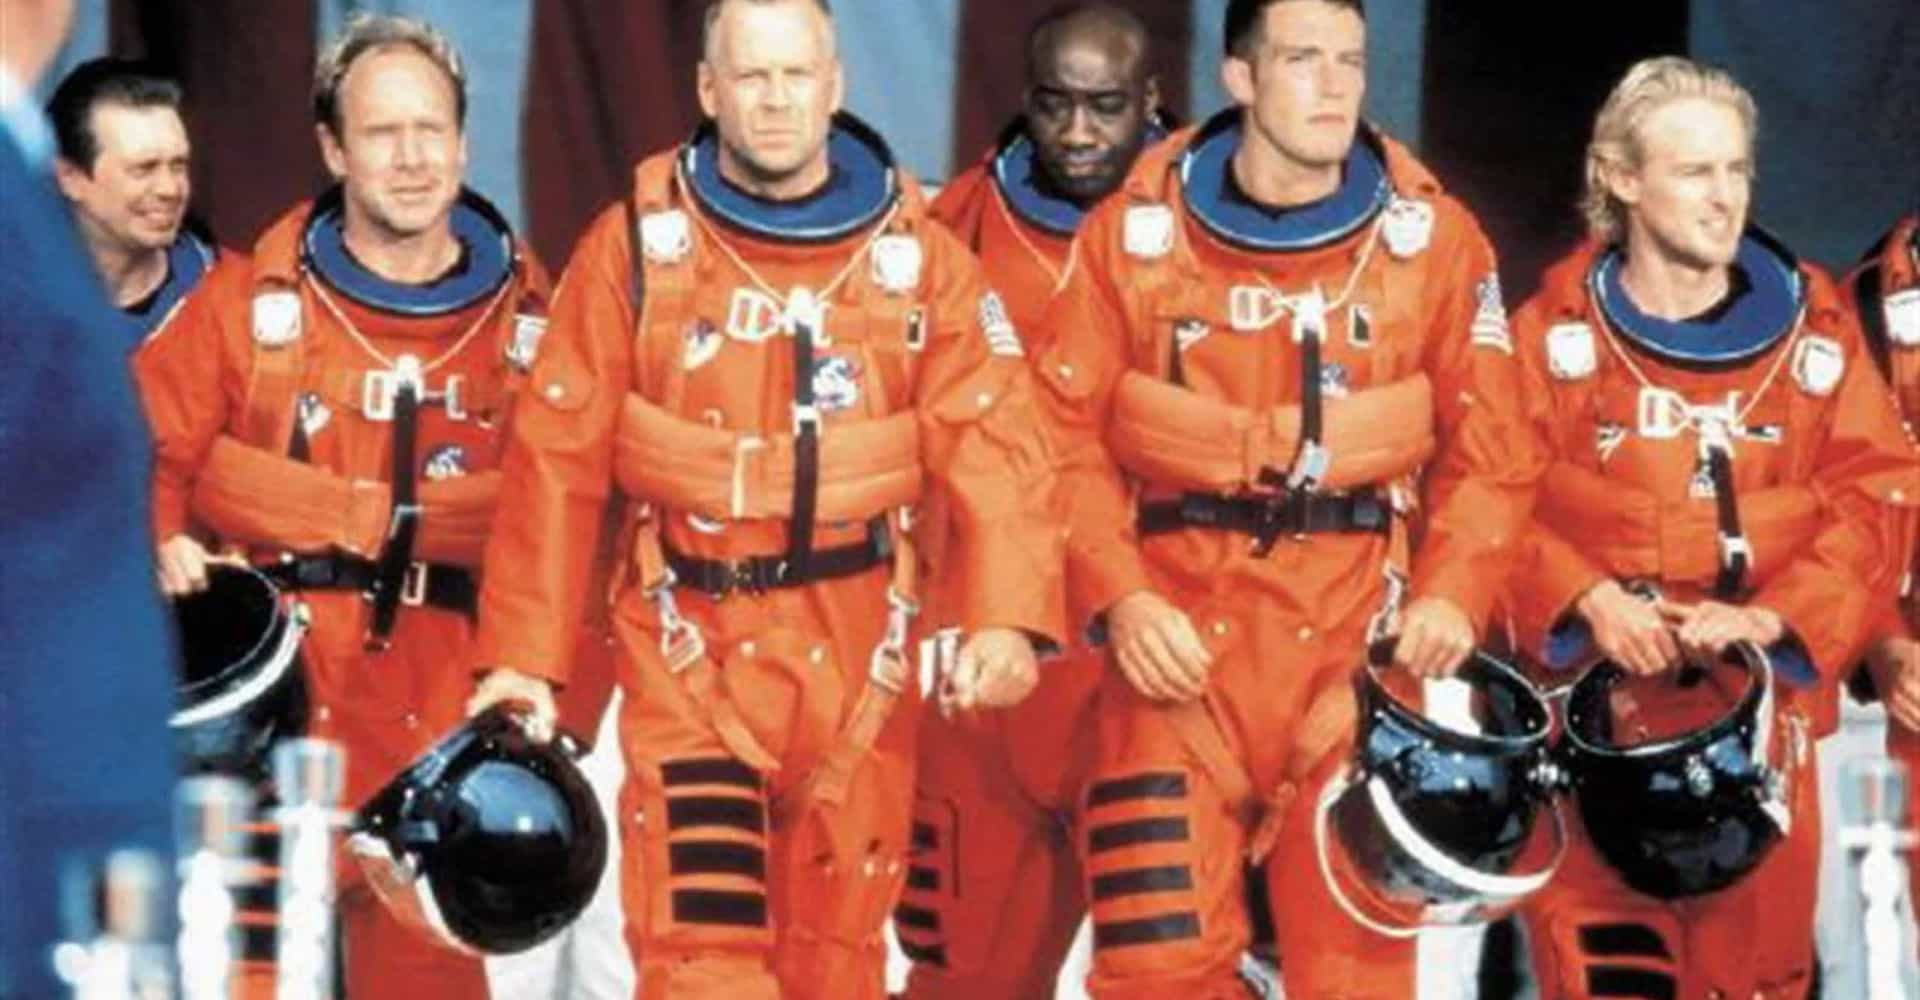 20 years after Armageddon, what are the cast up to now?